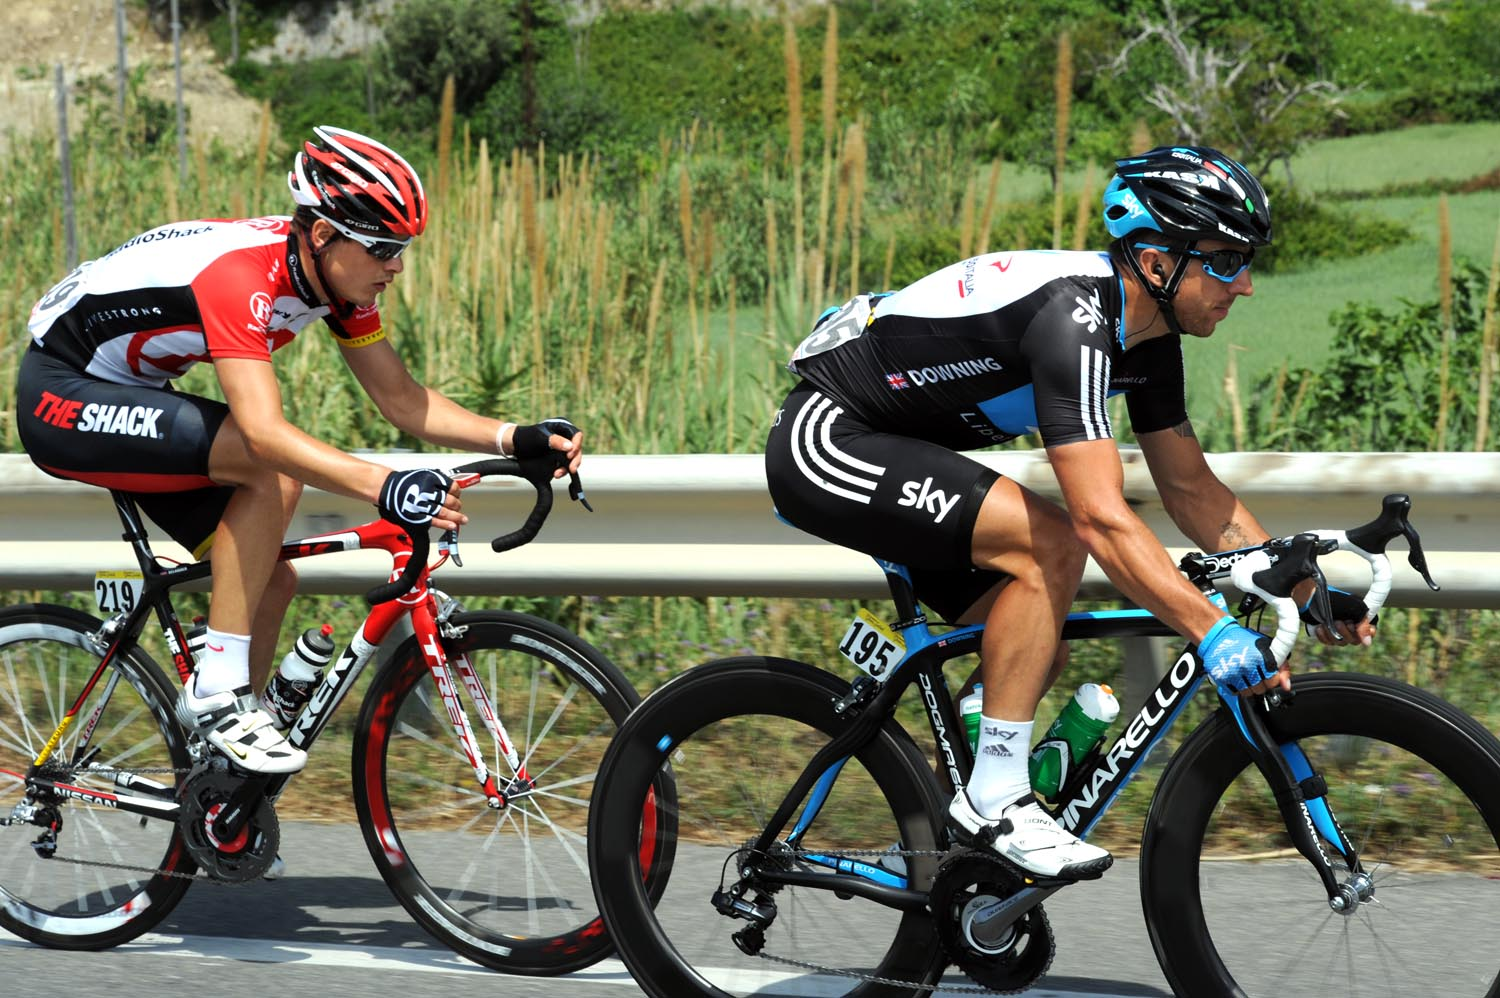 Russell Downing and Bjorn Selander, Giro d